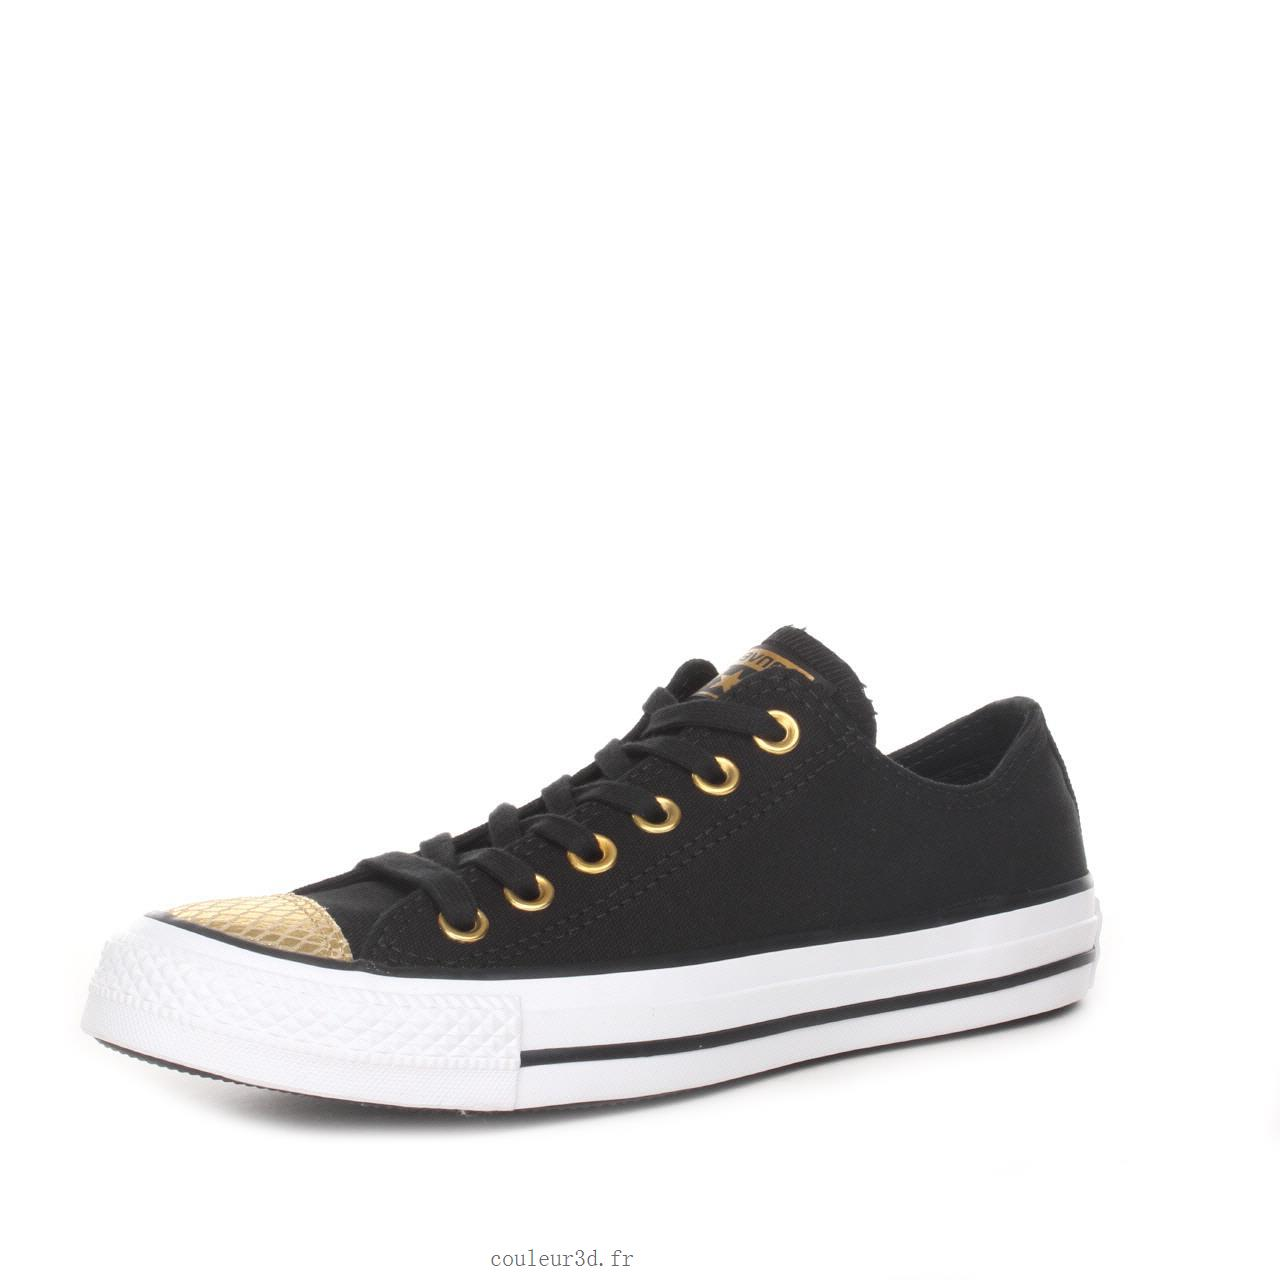 Converse femme taille 37